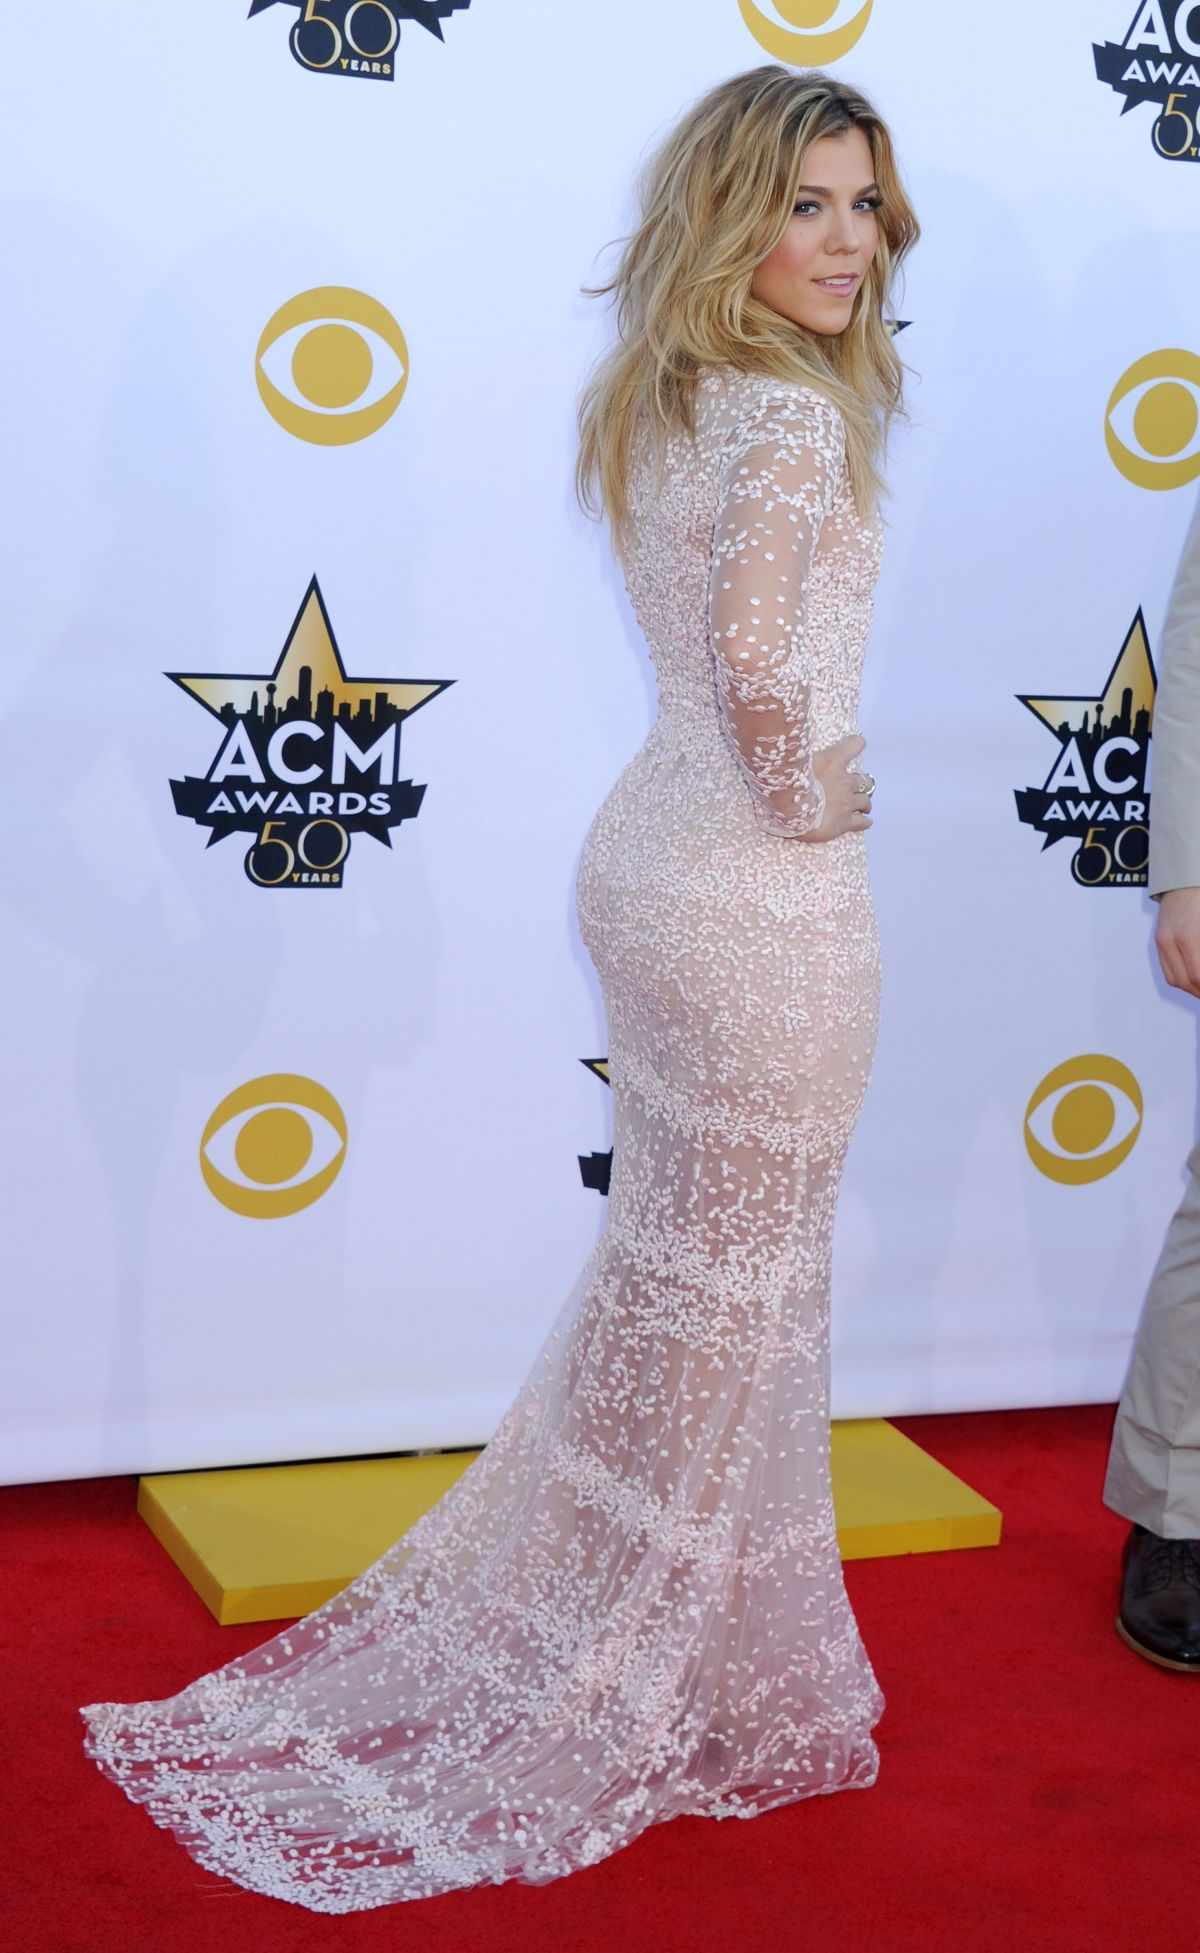 KIMBERLY PERRY at Academy of Country Music Awards 2015 in ... Jennifer Lopez On Facebook